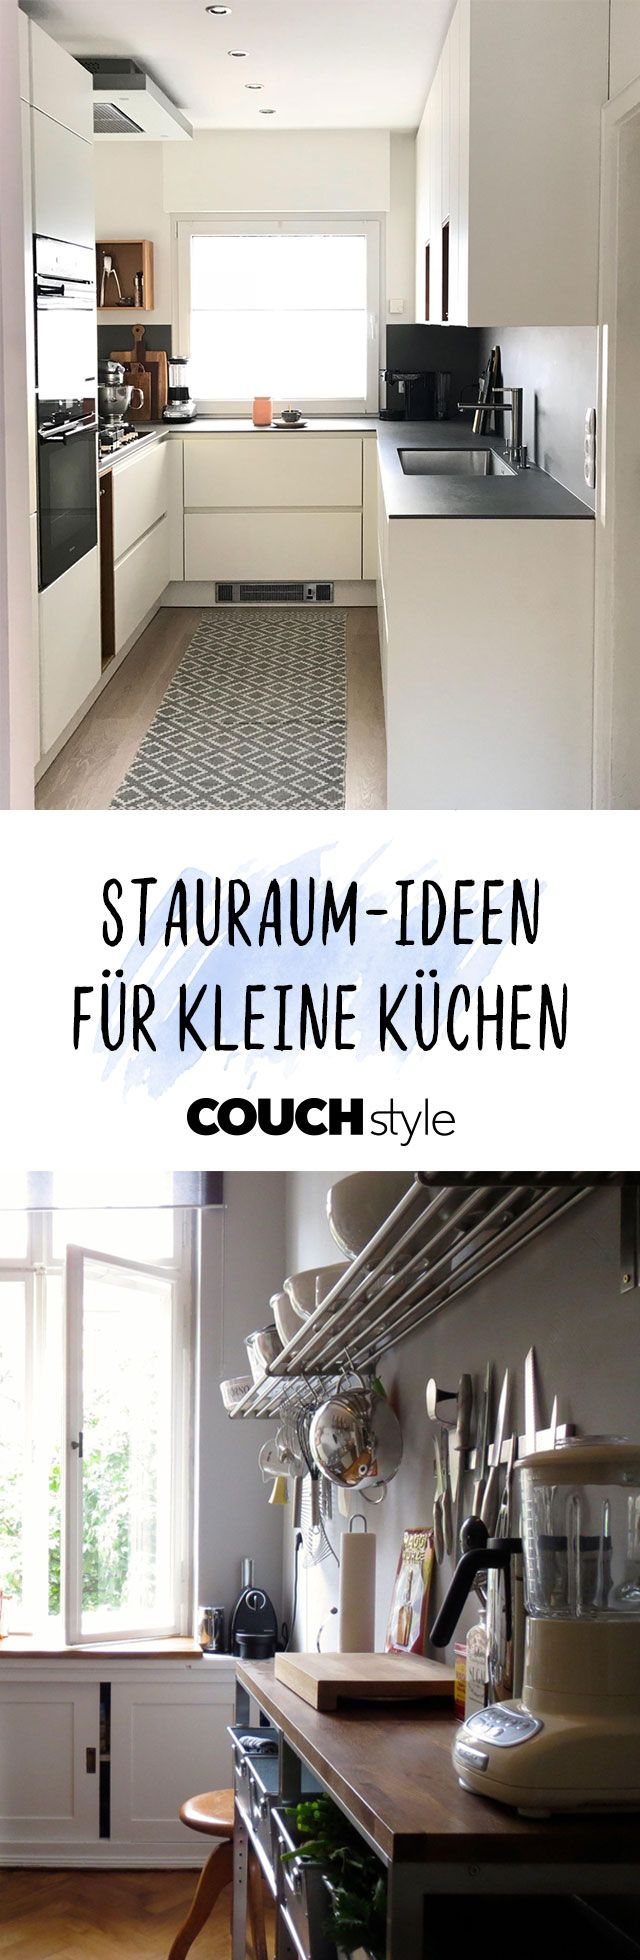 71 best Kleine Räume images on Pinterest | Small spaces, Apartment ...